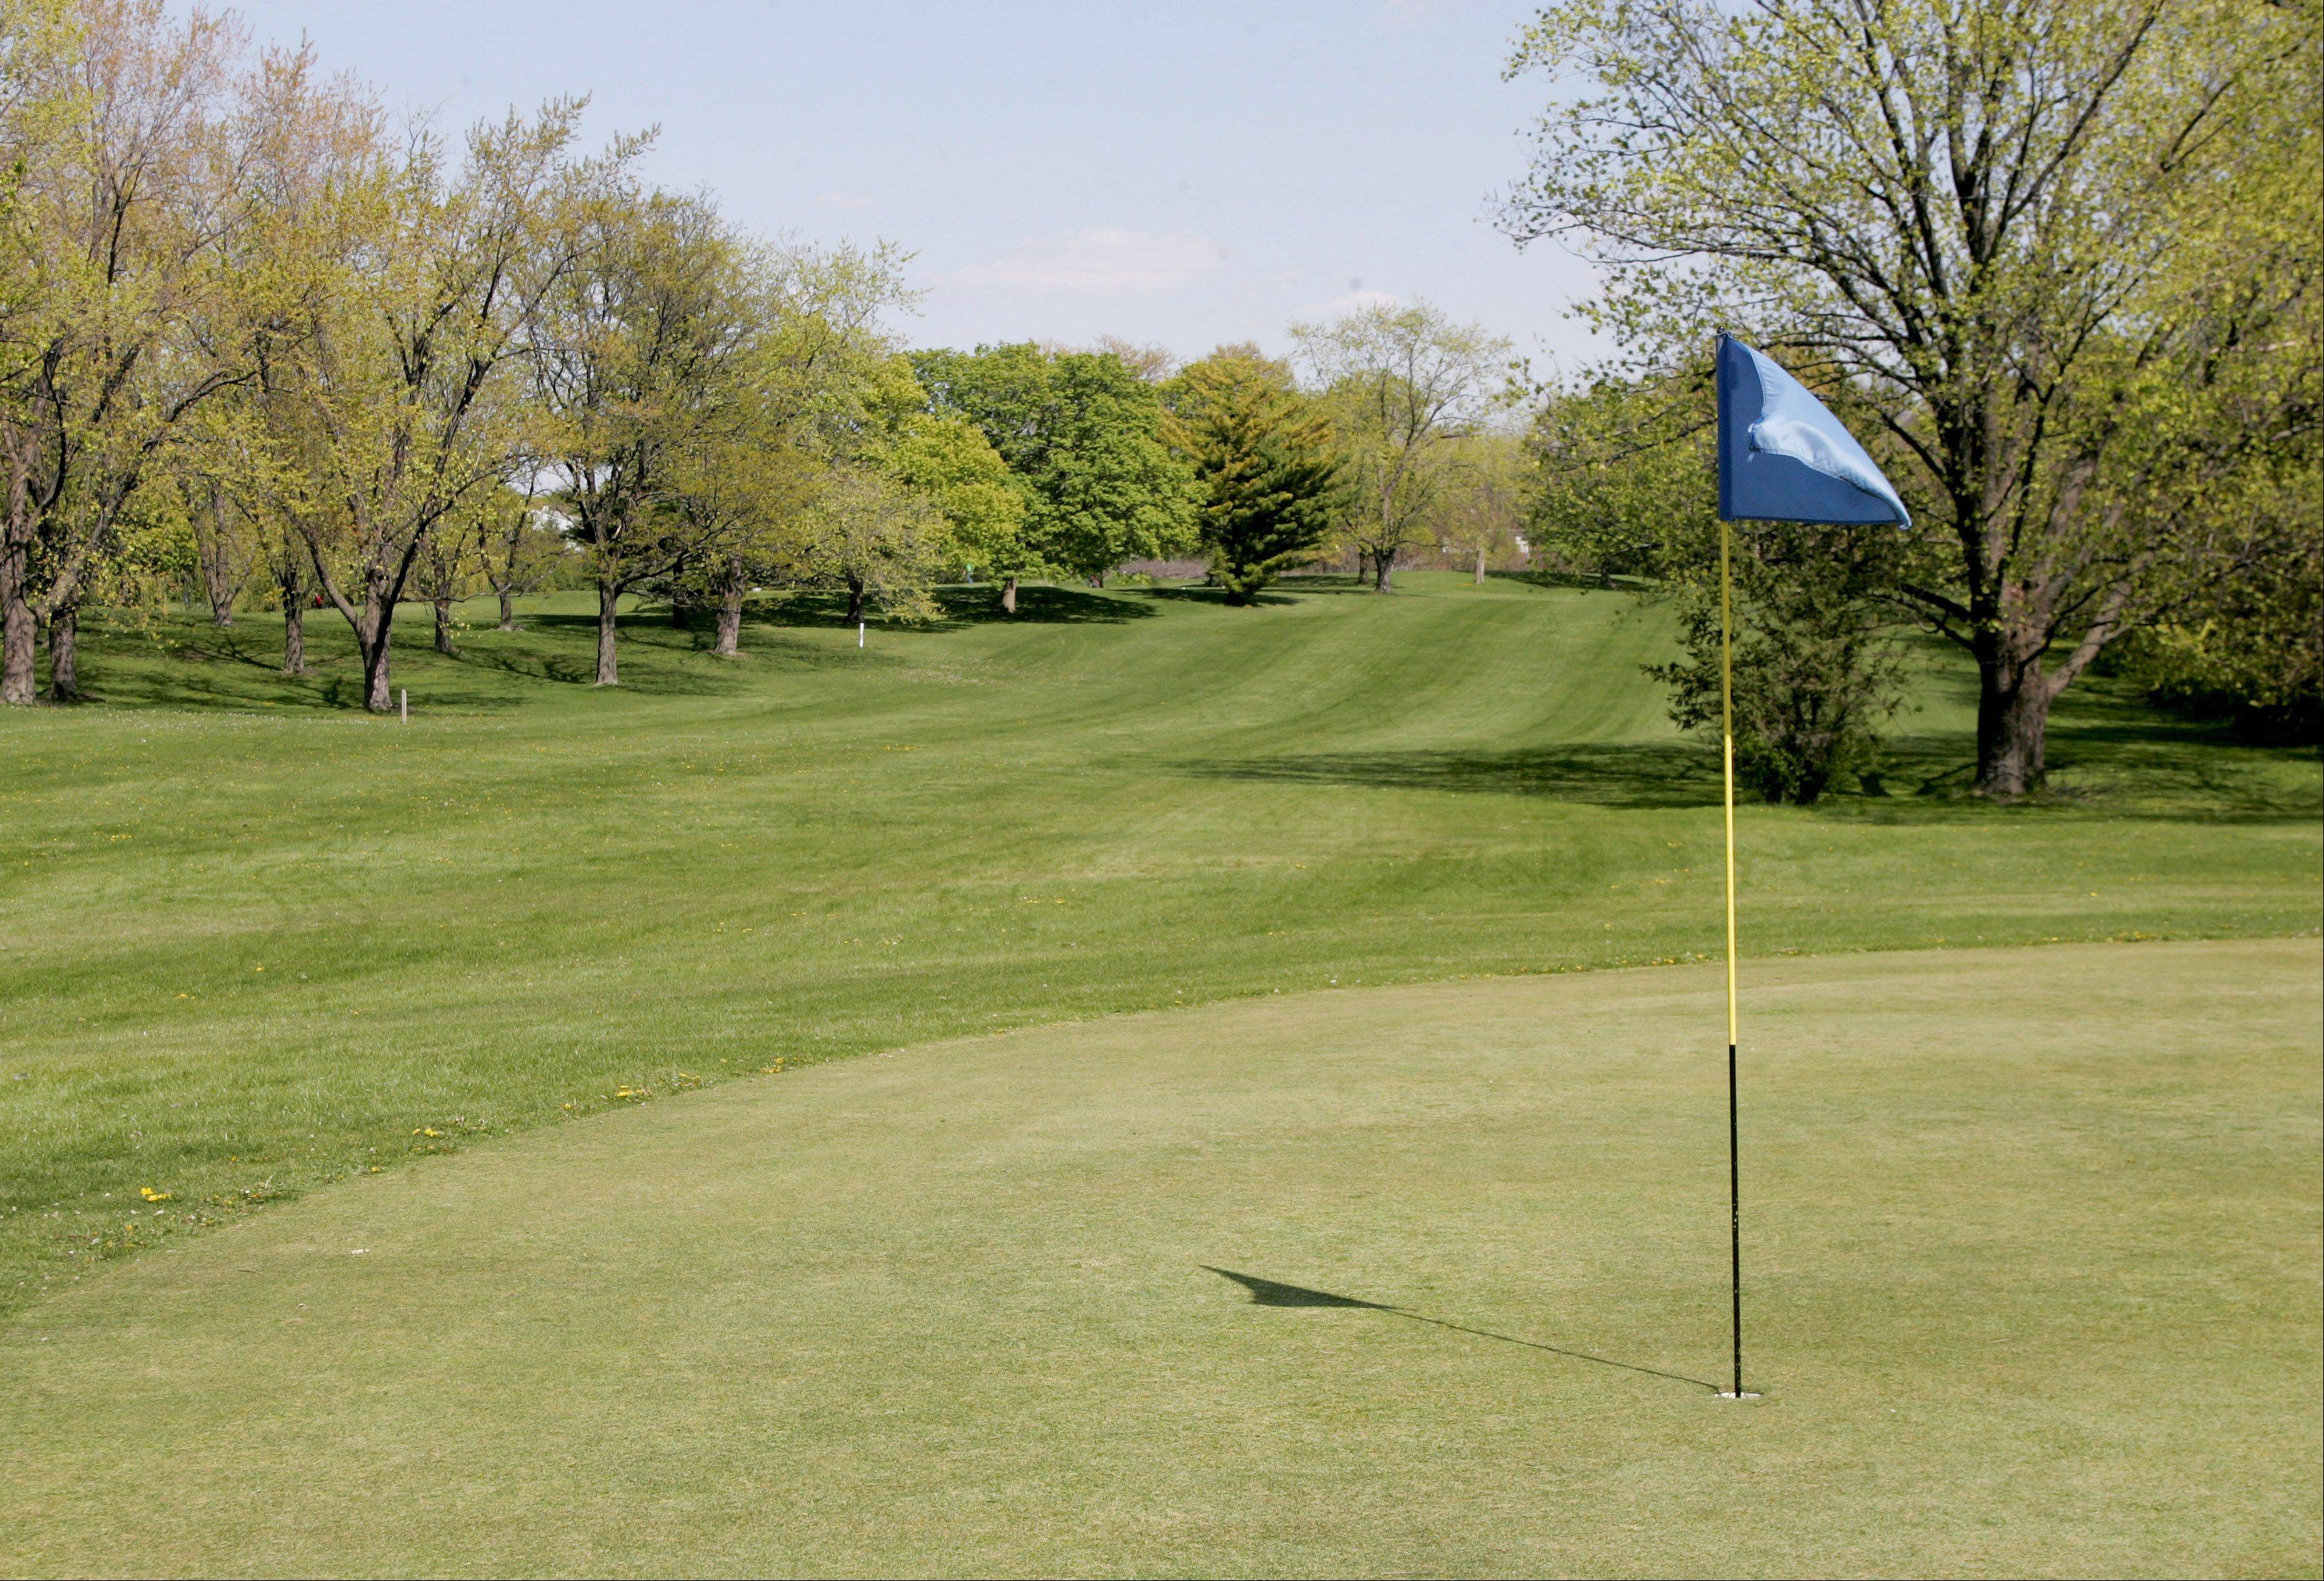 Request for housing on Lombard-area golf course moving to DuPage County